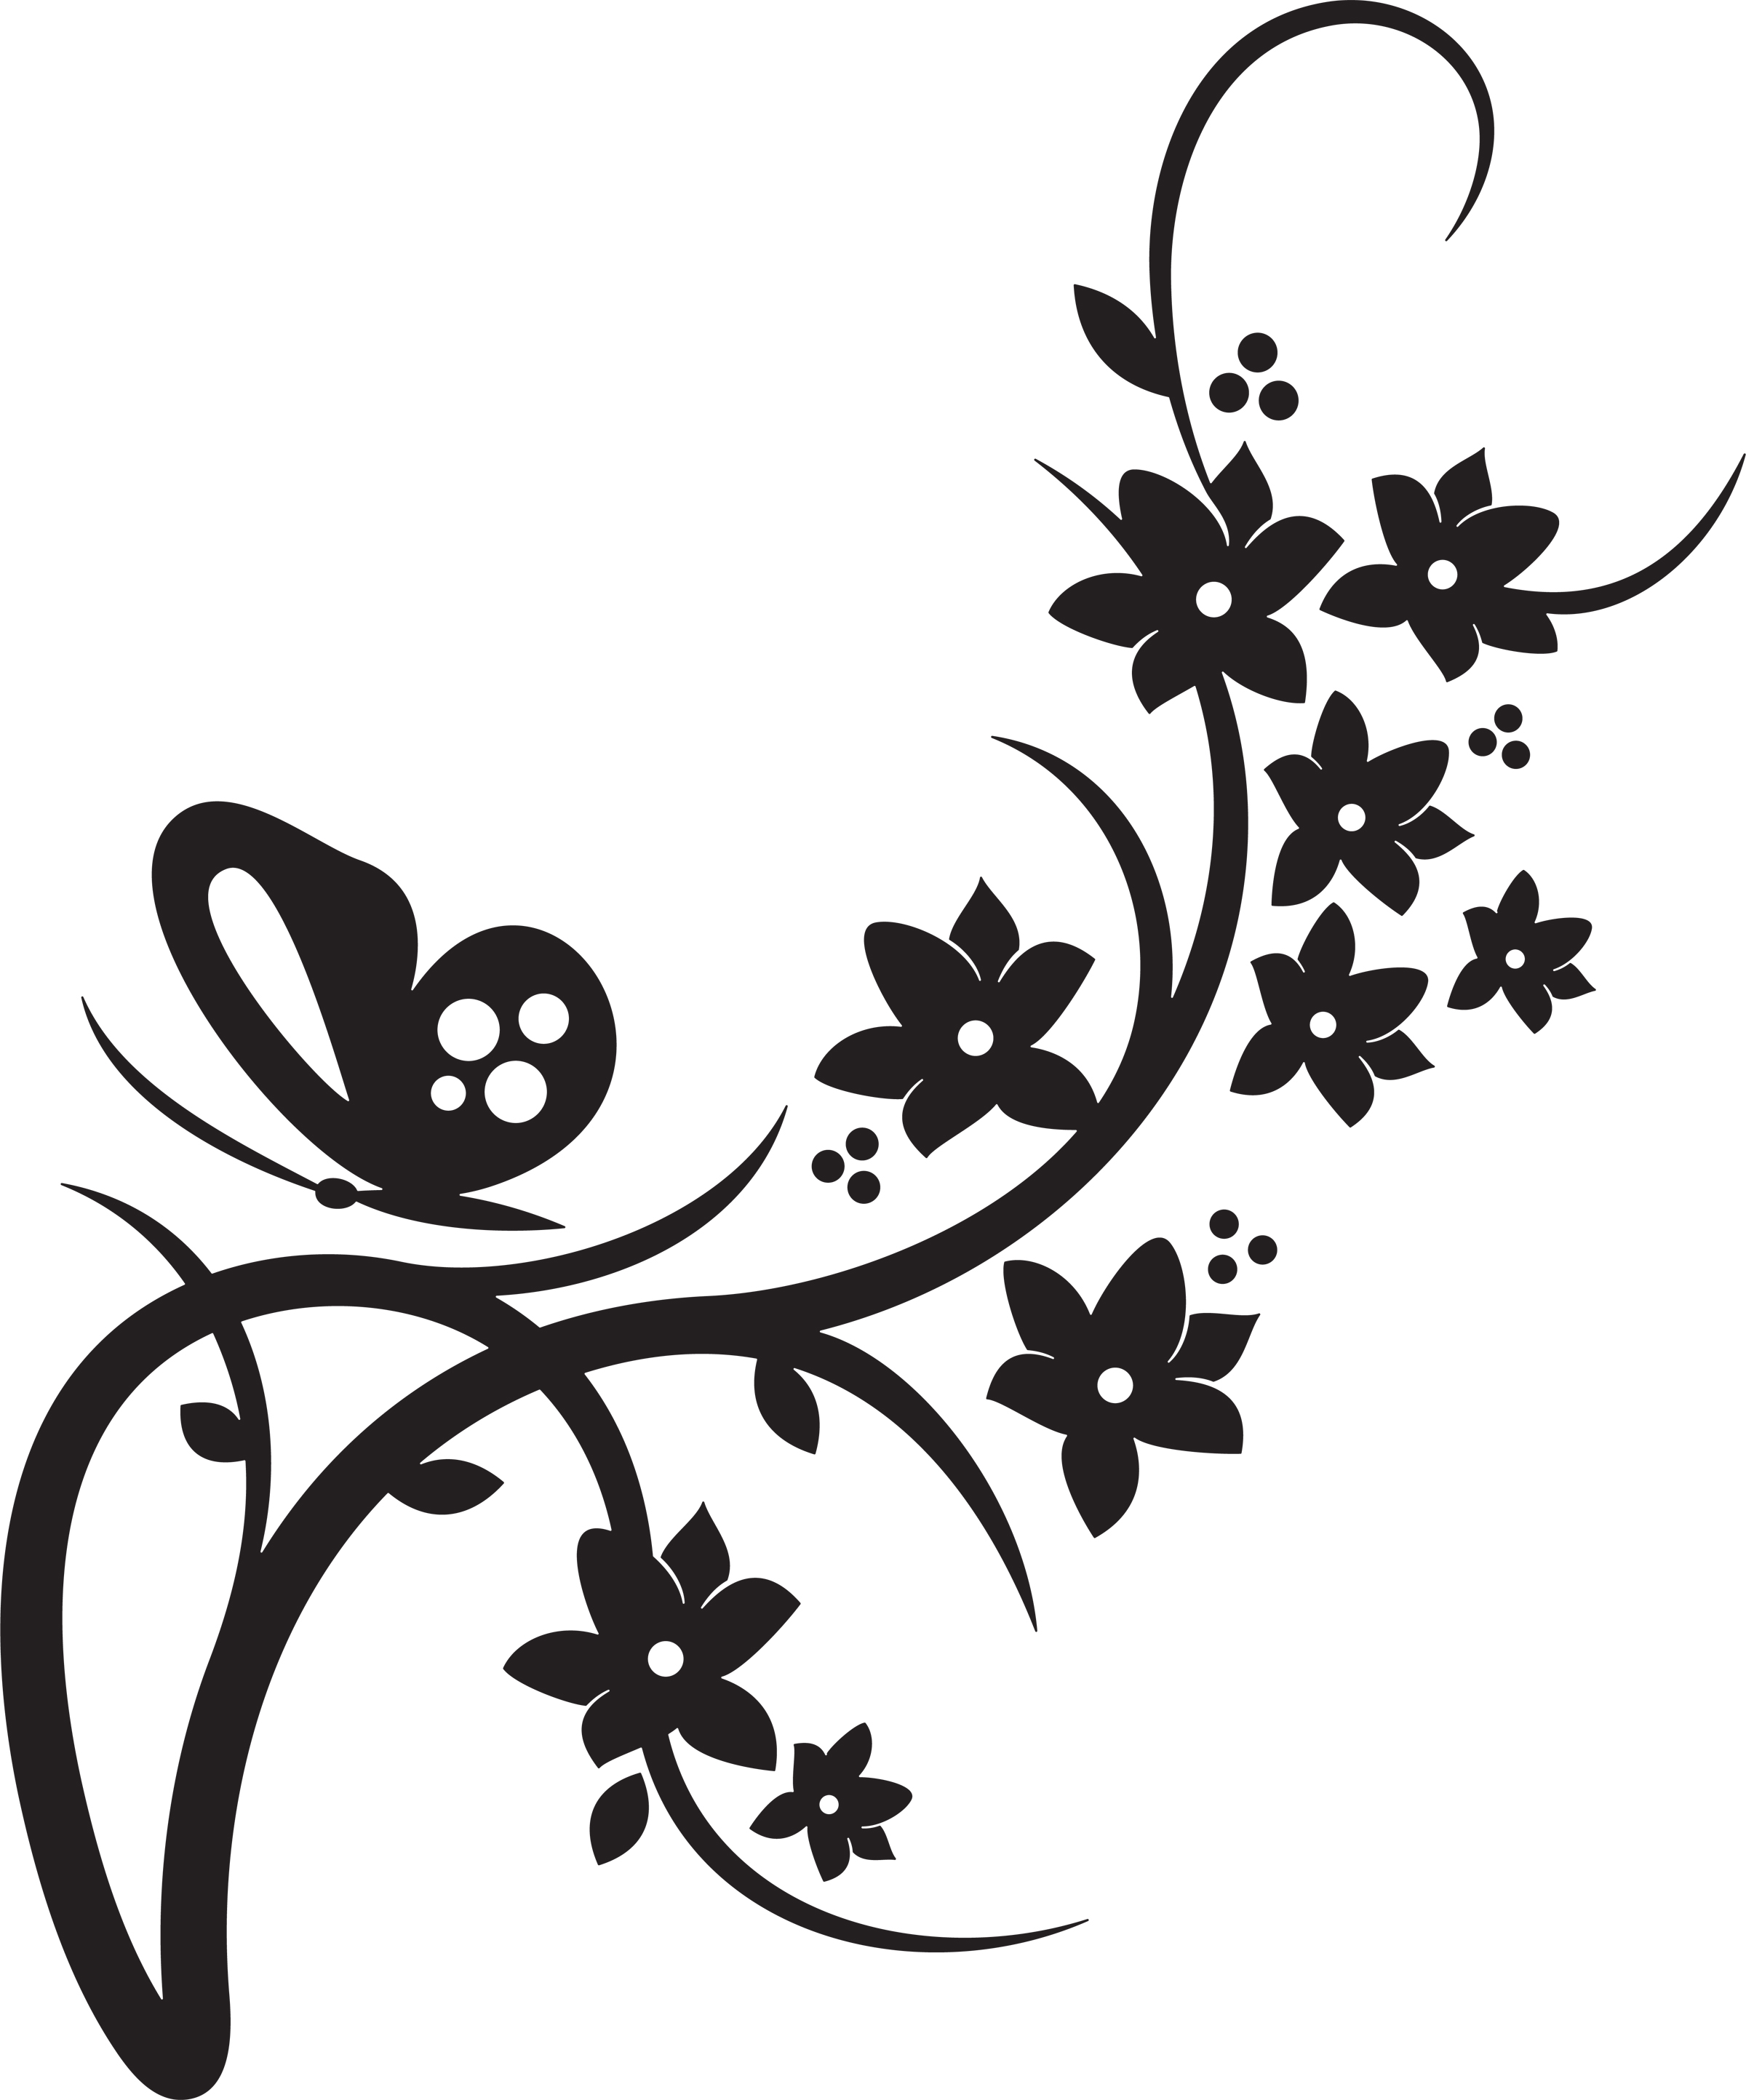 wedding-clip-art-black-and-white-border-7eTME7rin jpegWedding Anchor Clip Art Free